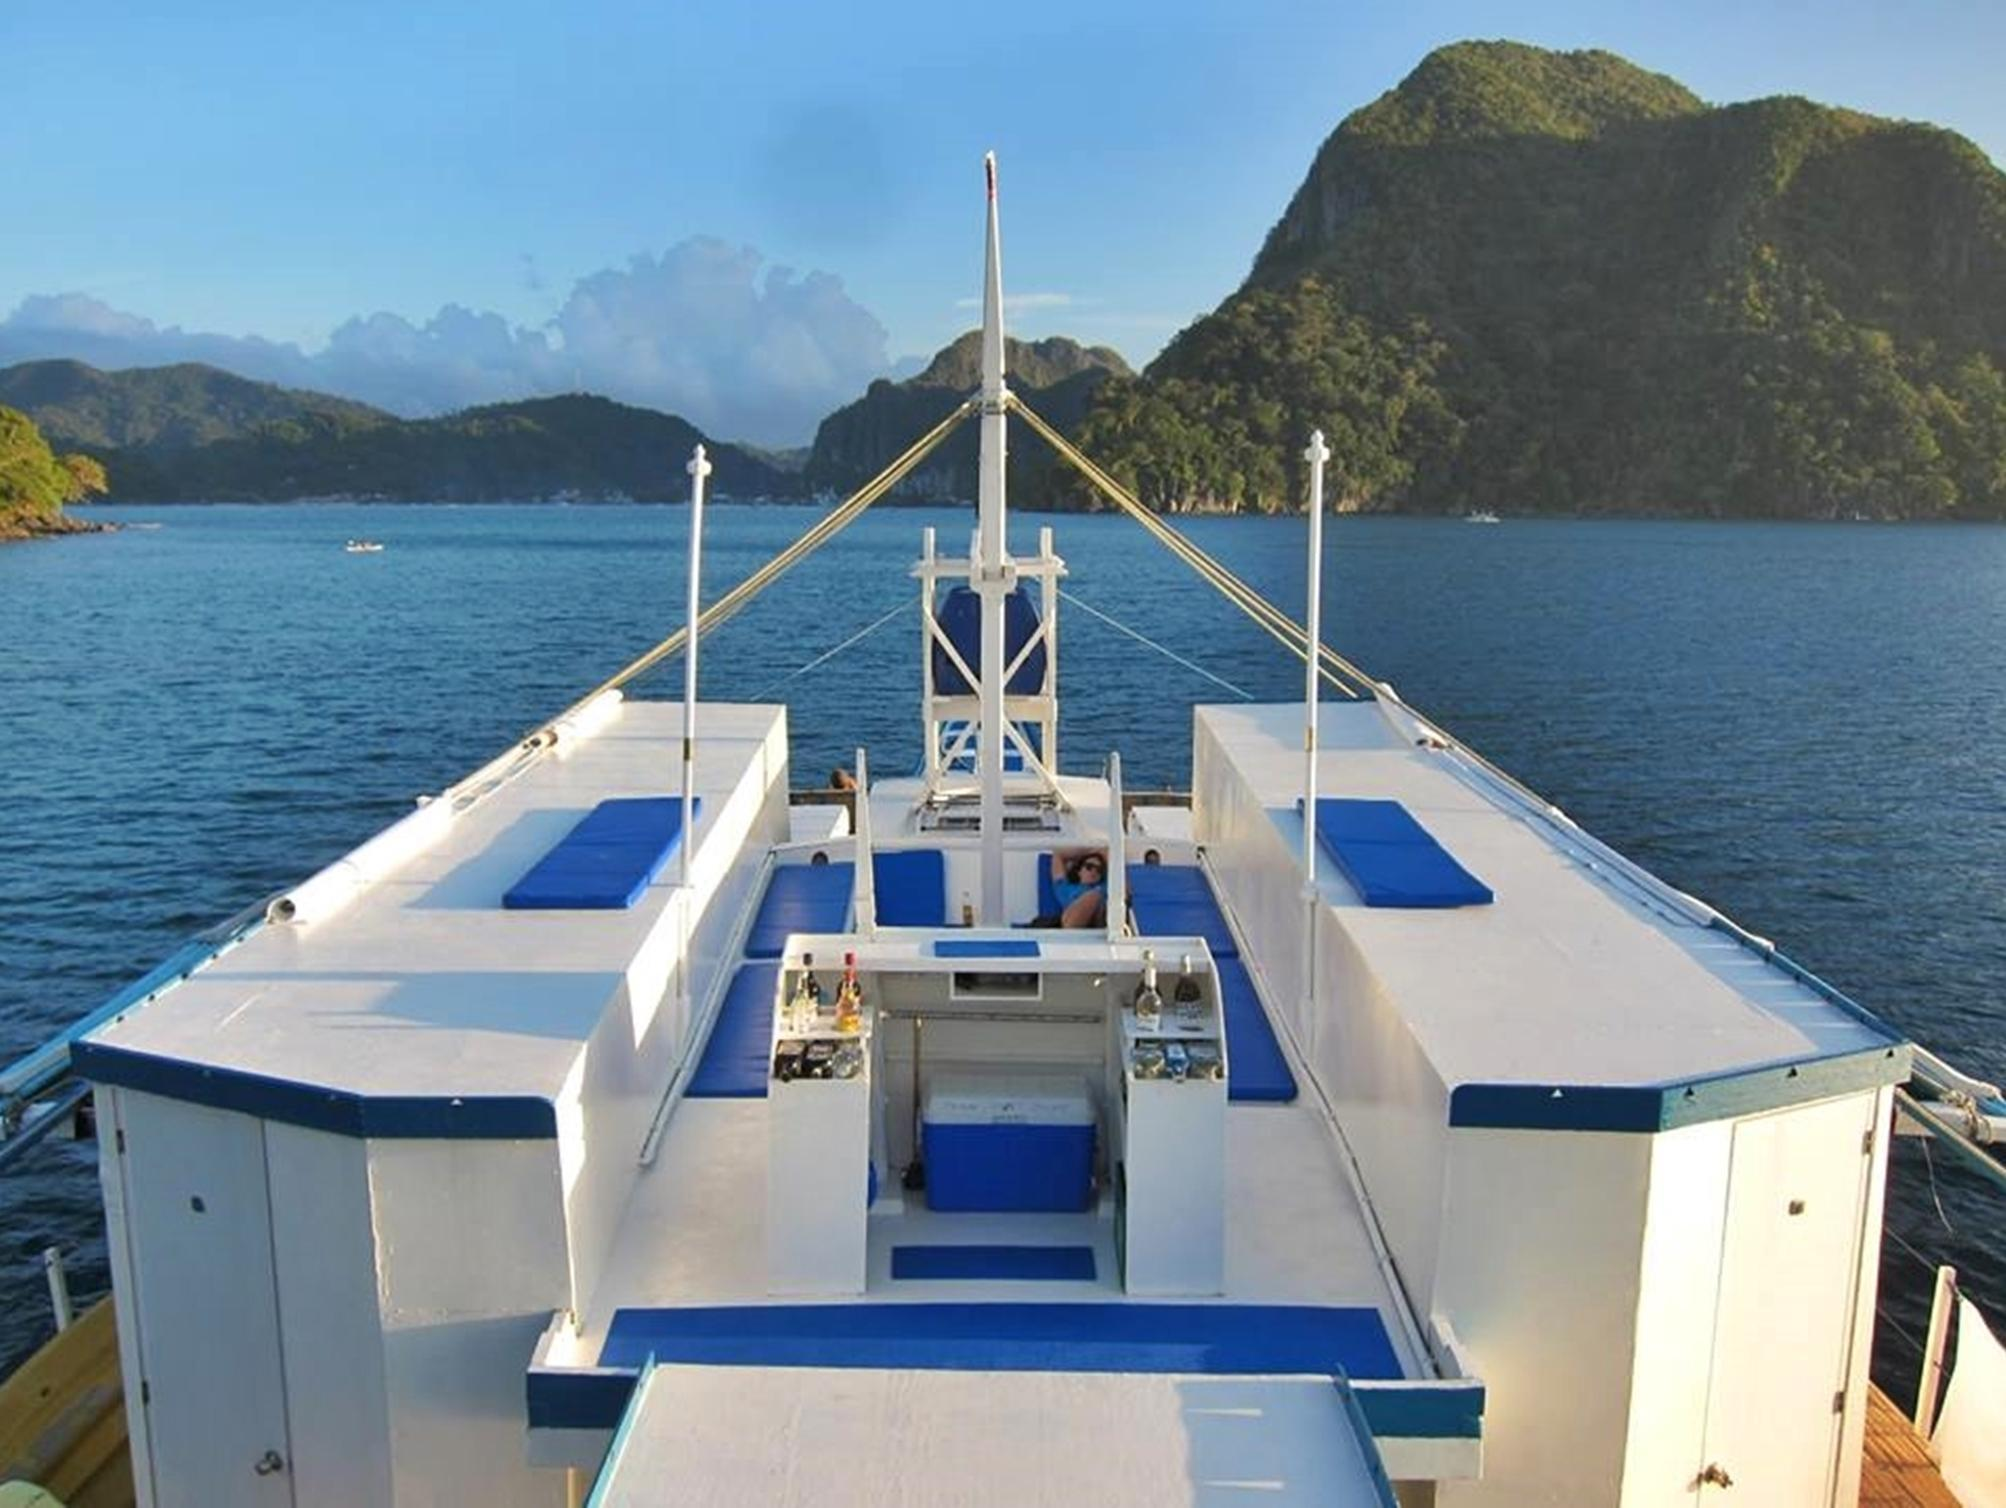 Palawan Secret Cruise Floating Hotel - Hotels and Accommodation in Philippines, Asia